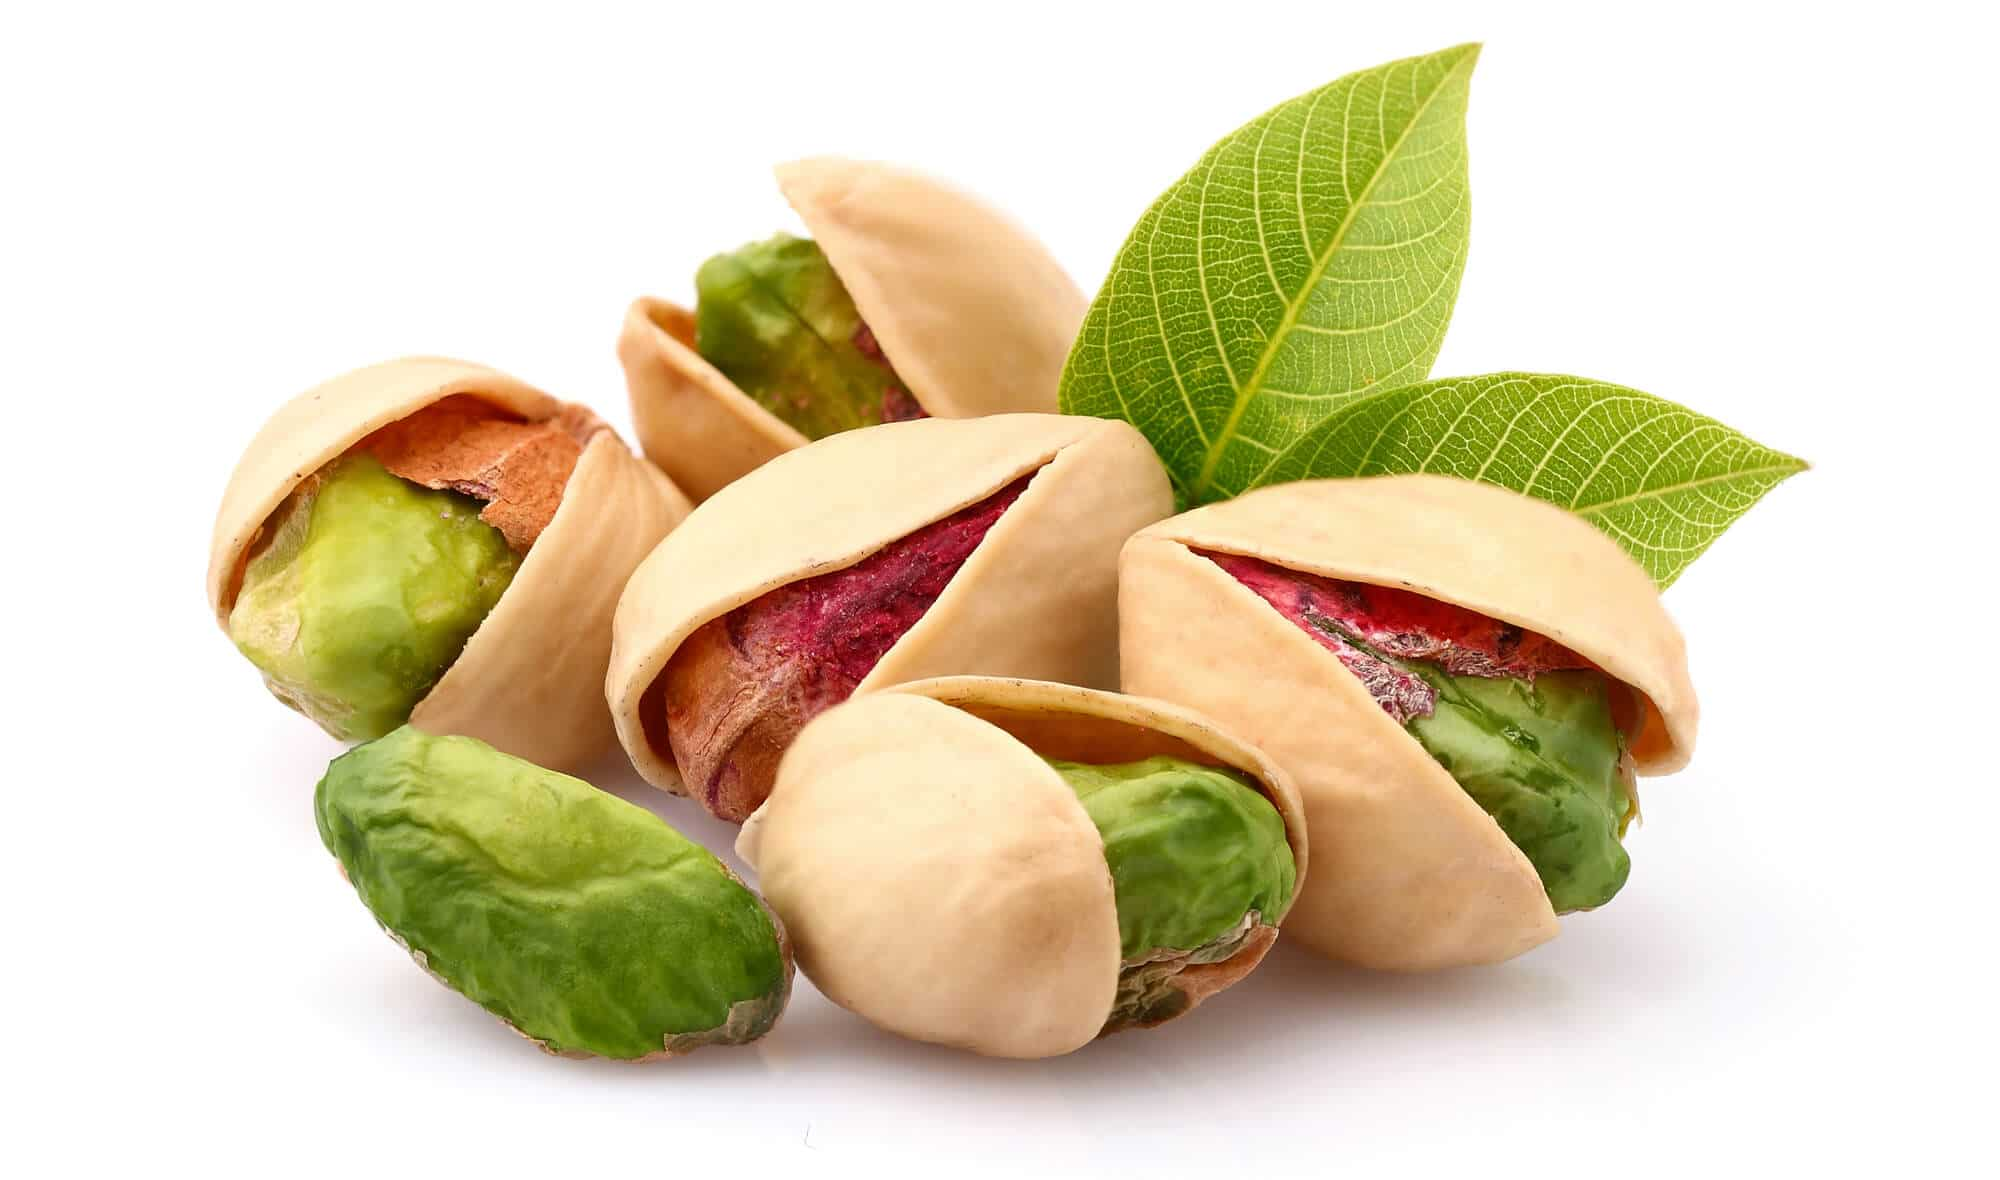 Pistachio Nutrition is Good for People with Diabetes